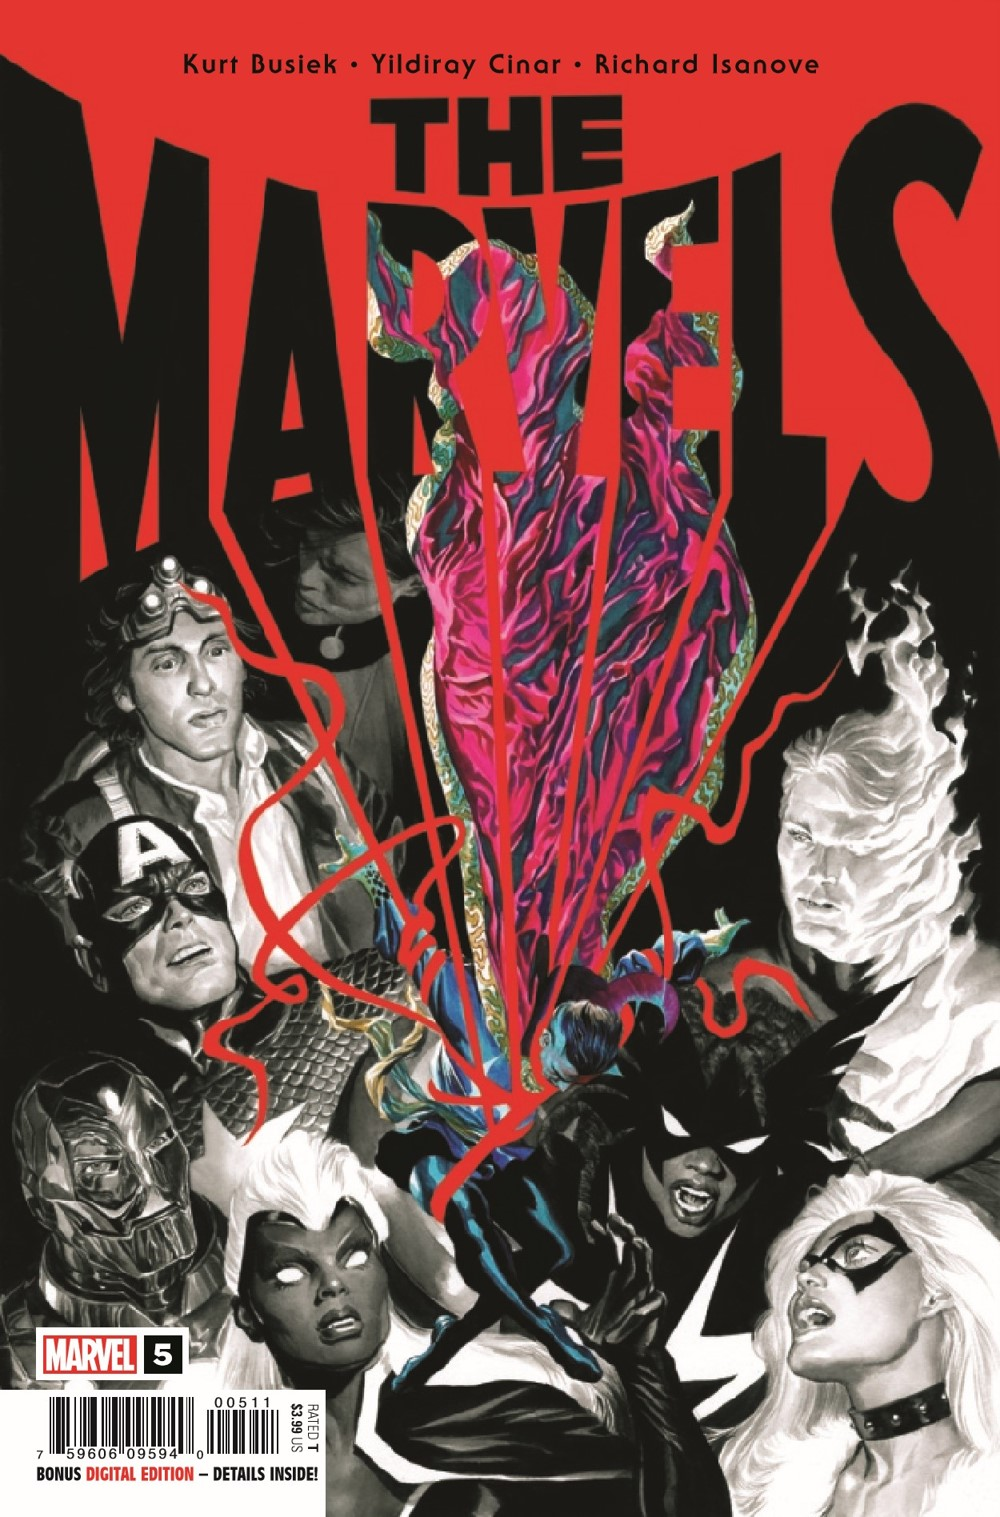 MAR2021005_Preview-1 ComicList Previews: THE MARVELS #5